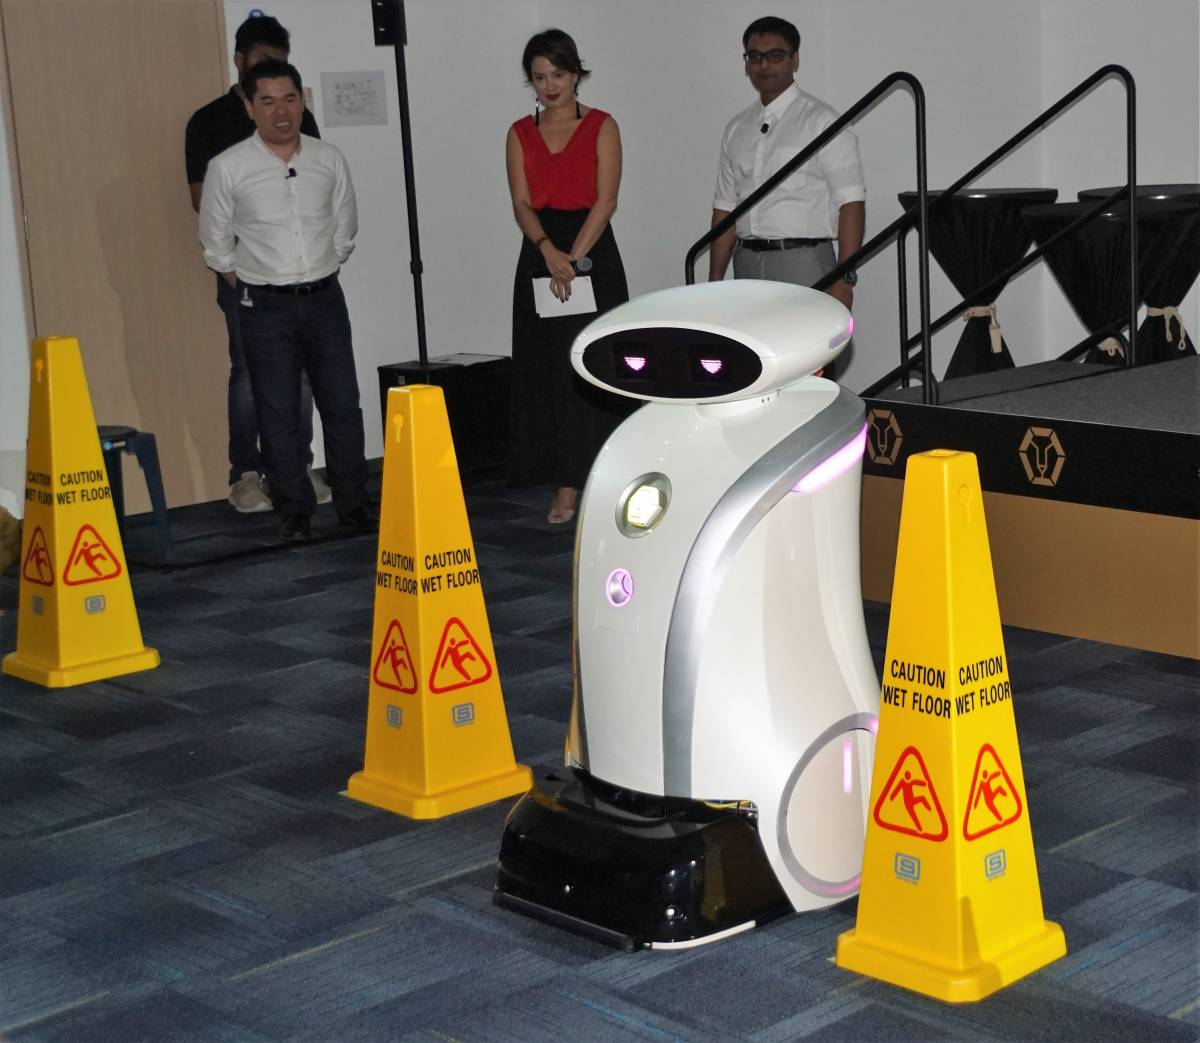 LIONSBOT INTRODUCES PROFESSIONAL CLEANING ROBOTS WITH PERSONALITY